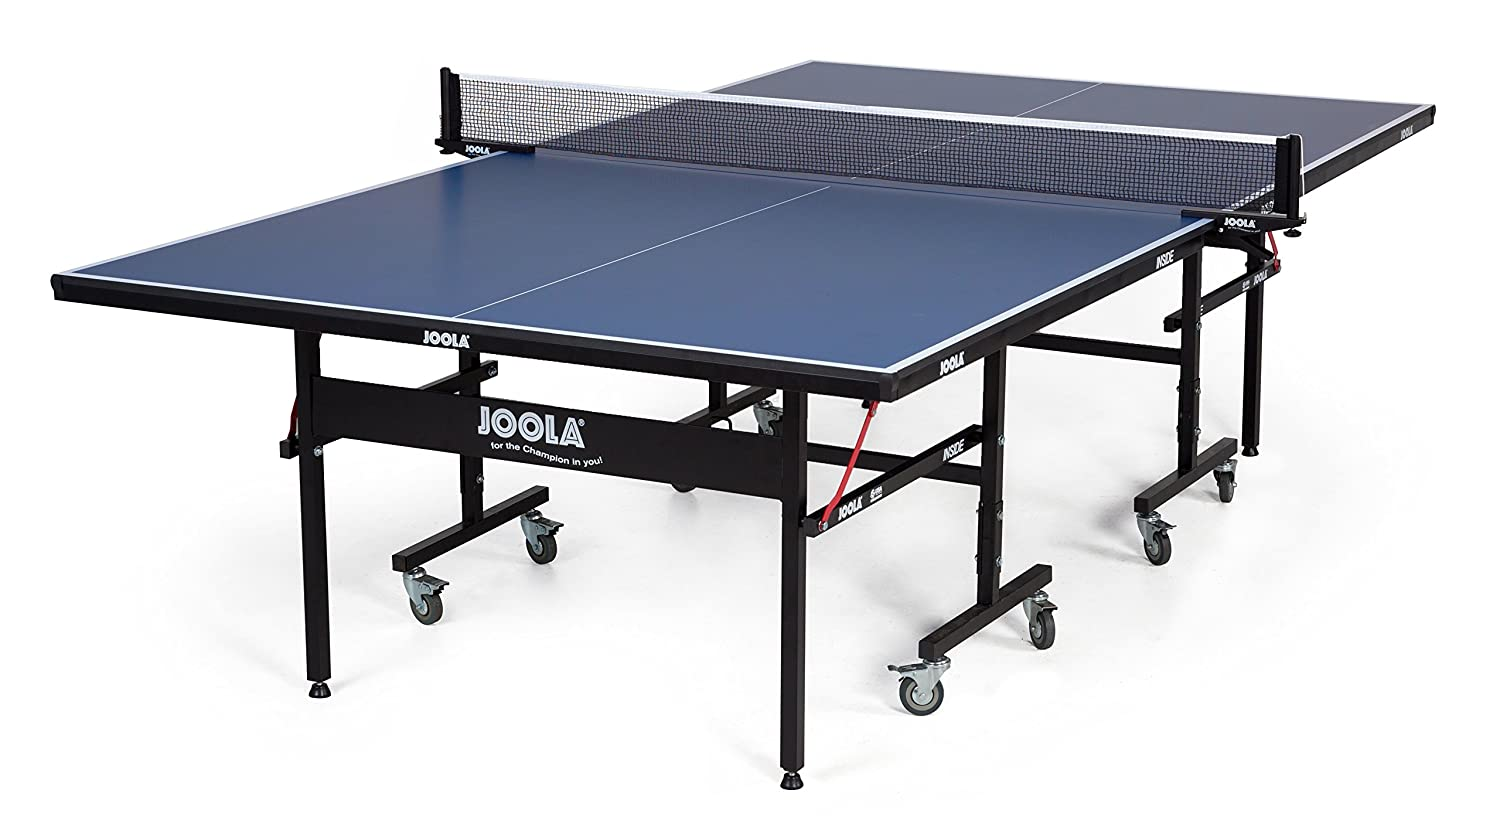 JOOLA Inside 15 Table Tennis Table Net